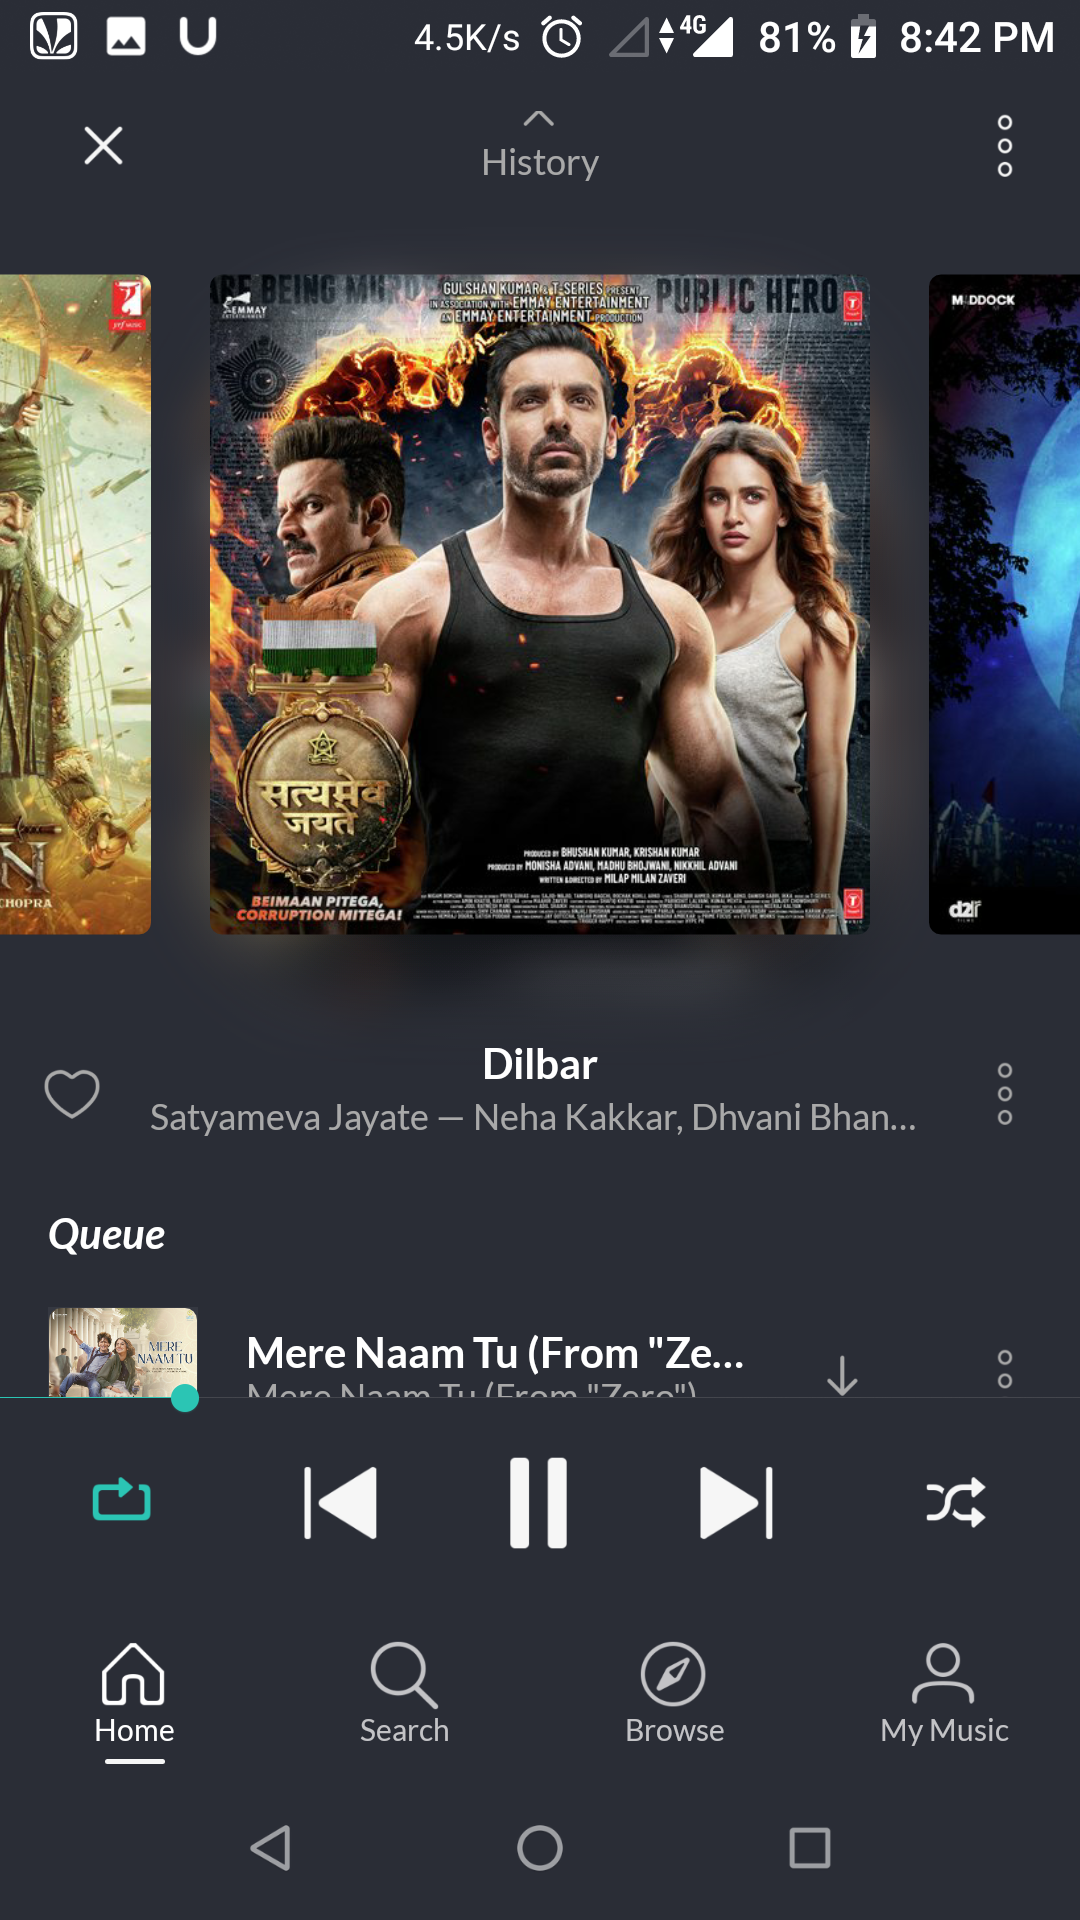 JioSaavn App Launched, Jio Users Get 90 Days Complimentary